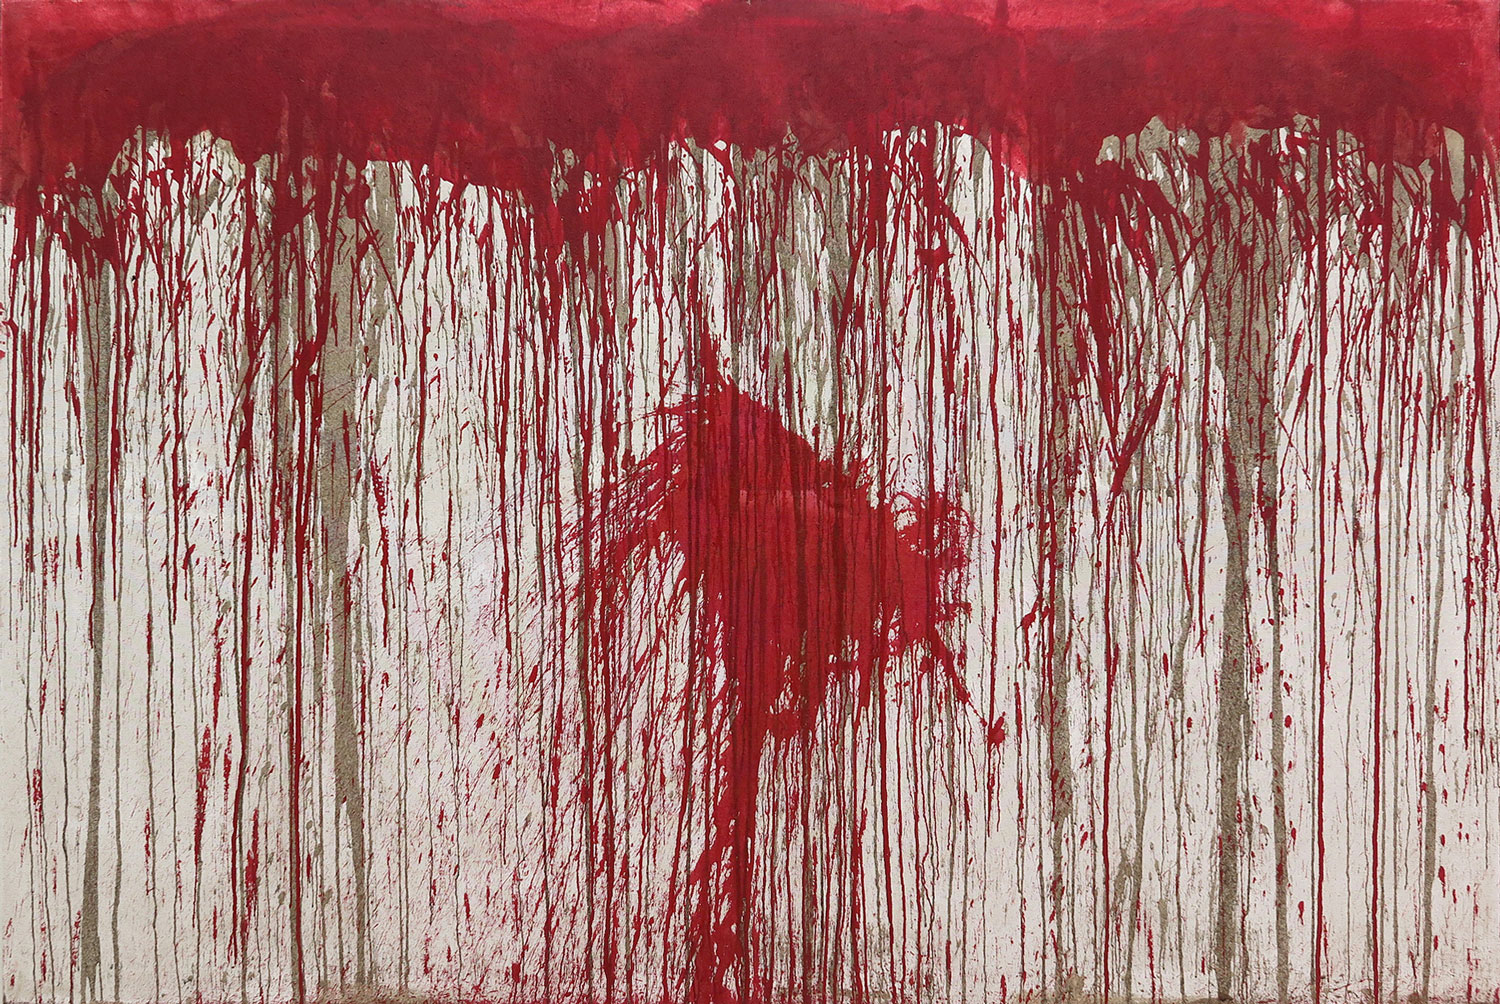 2010 Blood and Acrylic on Canvas 78 3/4 x 118 1/4 in 200 x 300 cm - Marc Straus Gallery